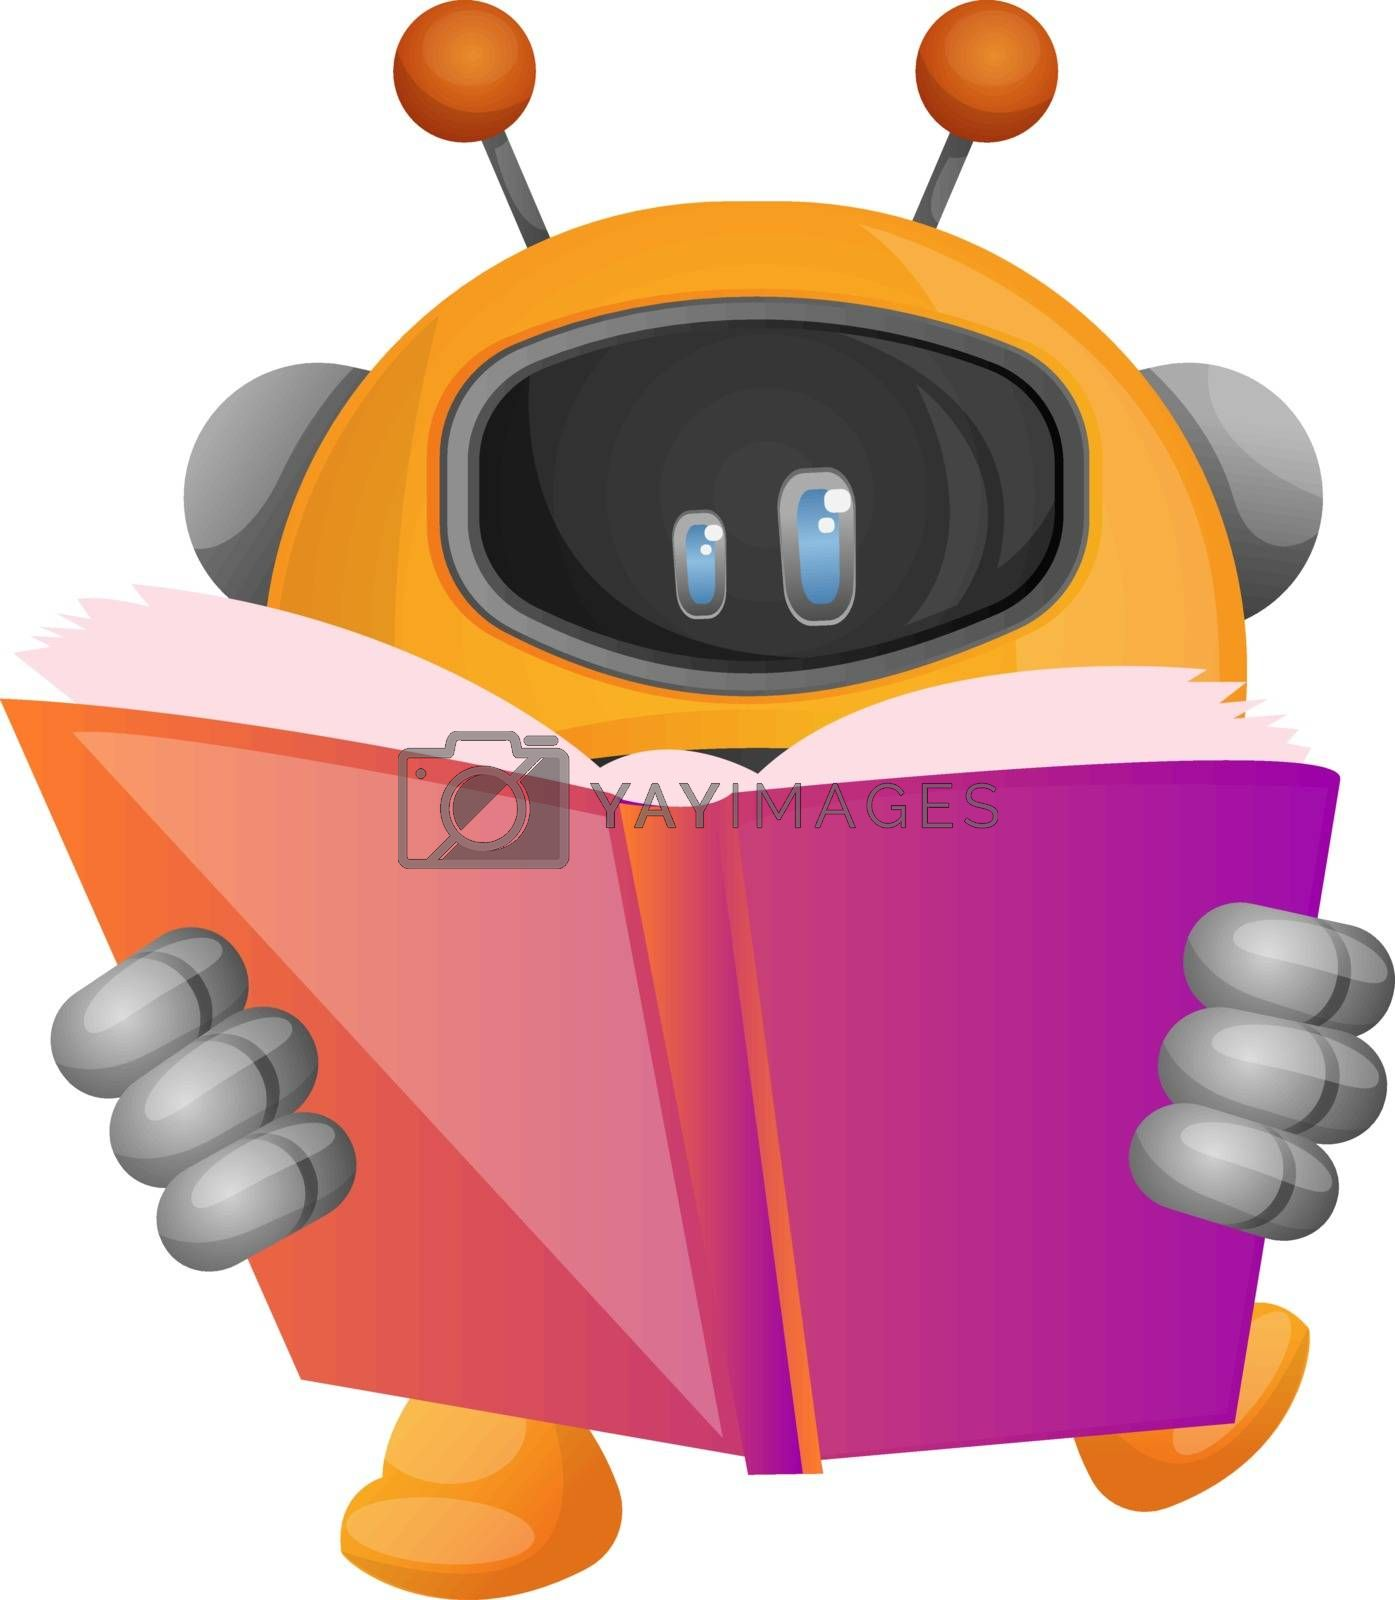 Royalty free image of Cartoon robot reading a book illustration vector on white backgr by Morphart